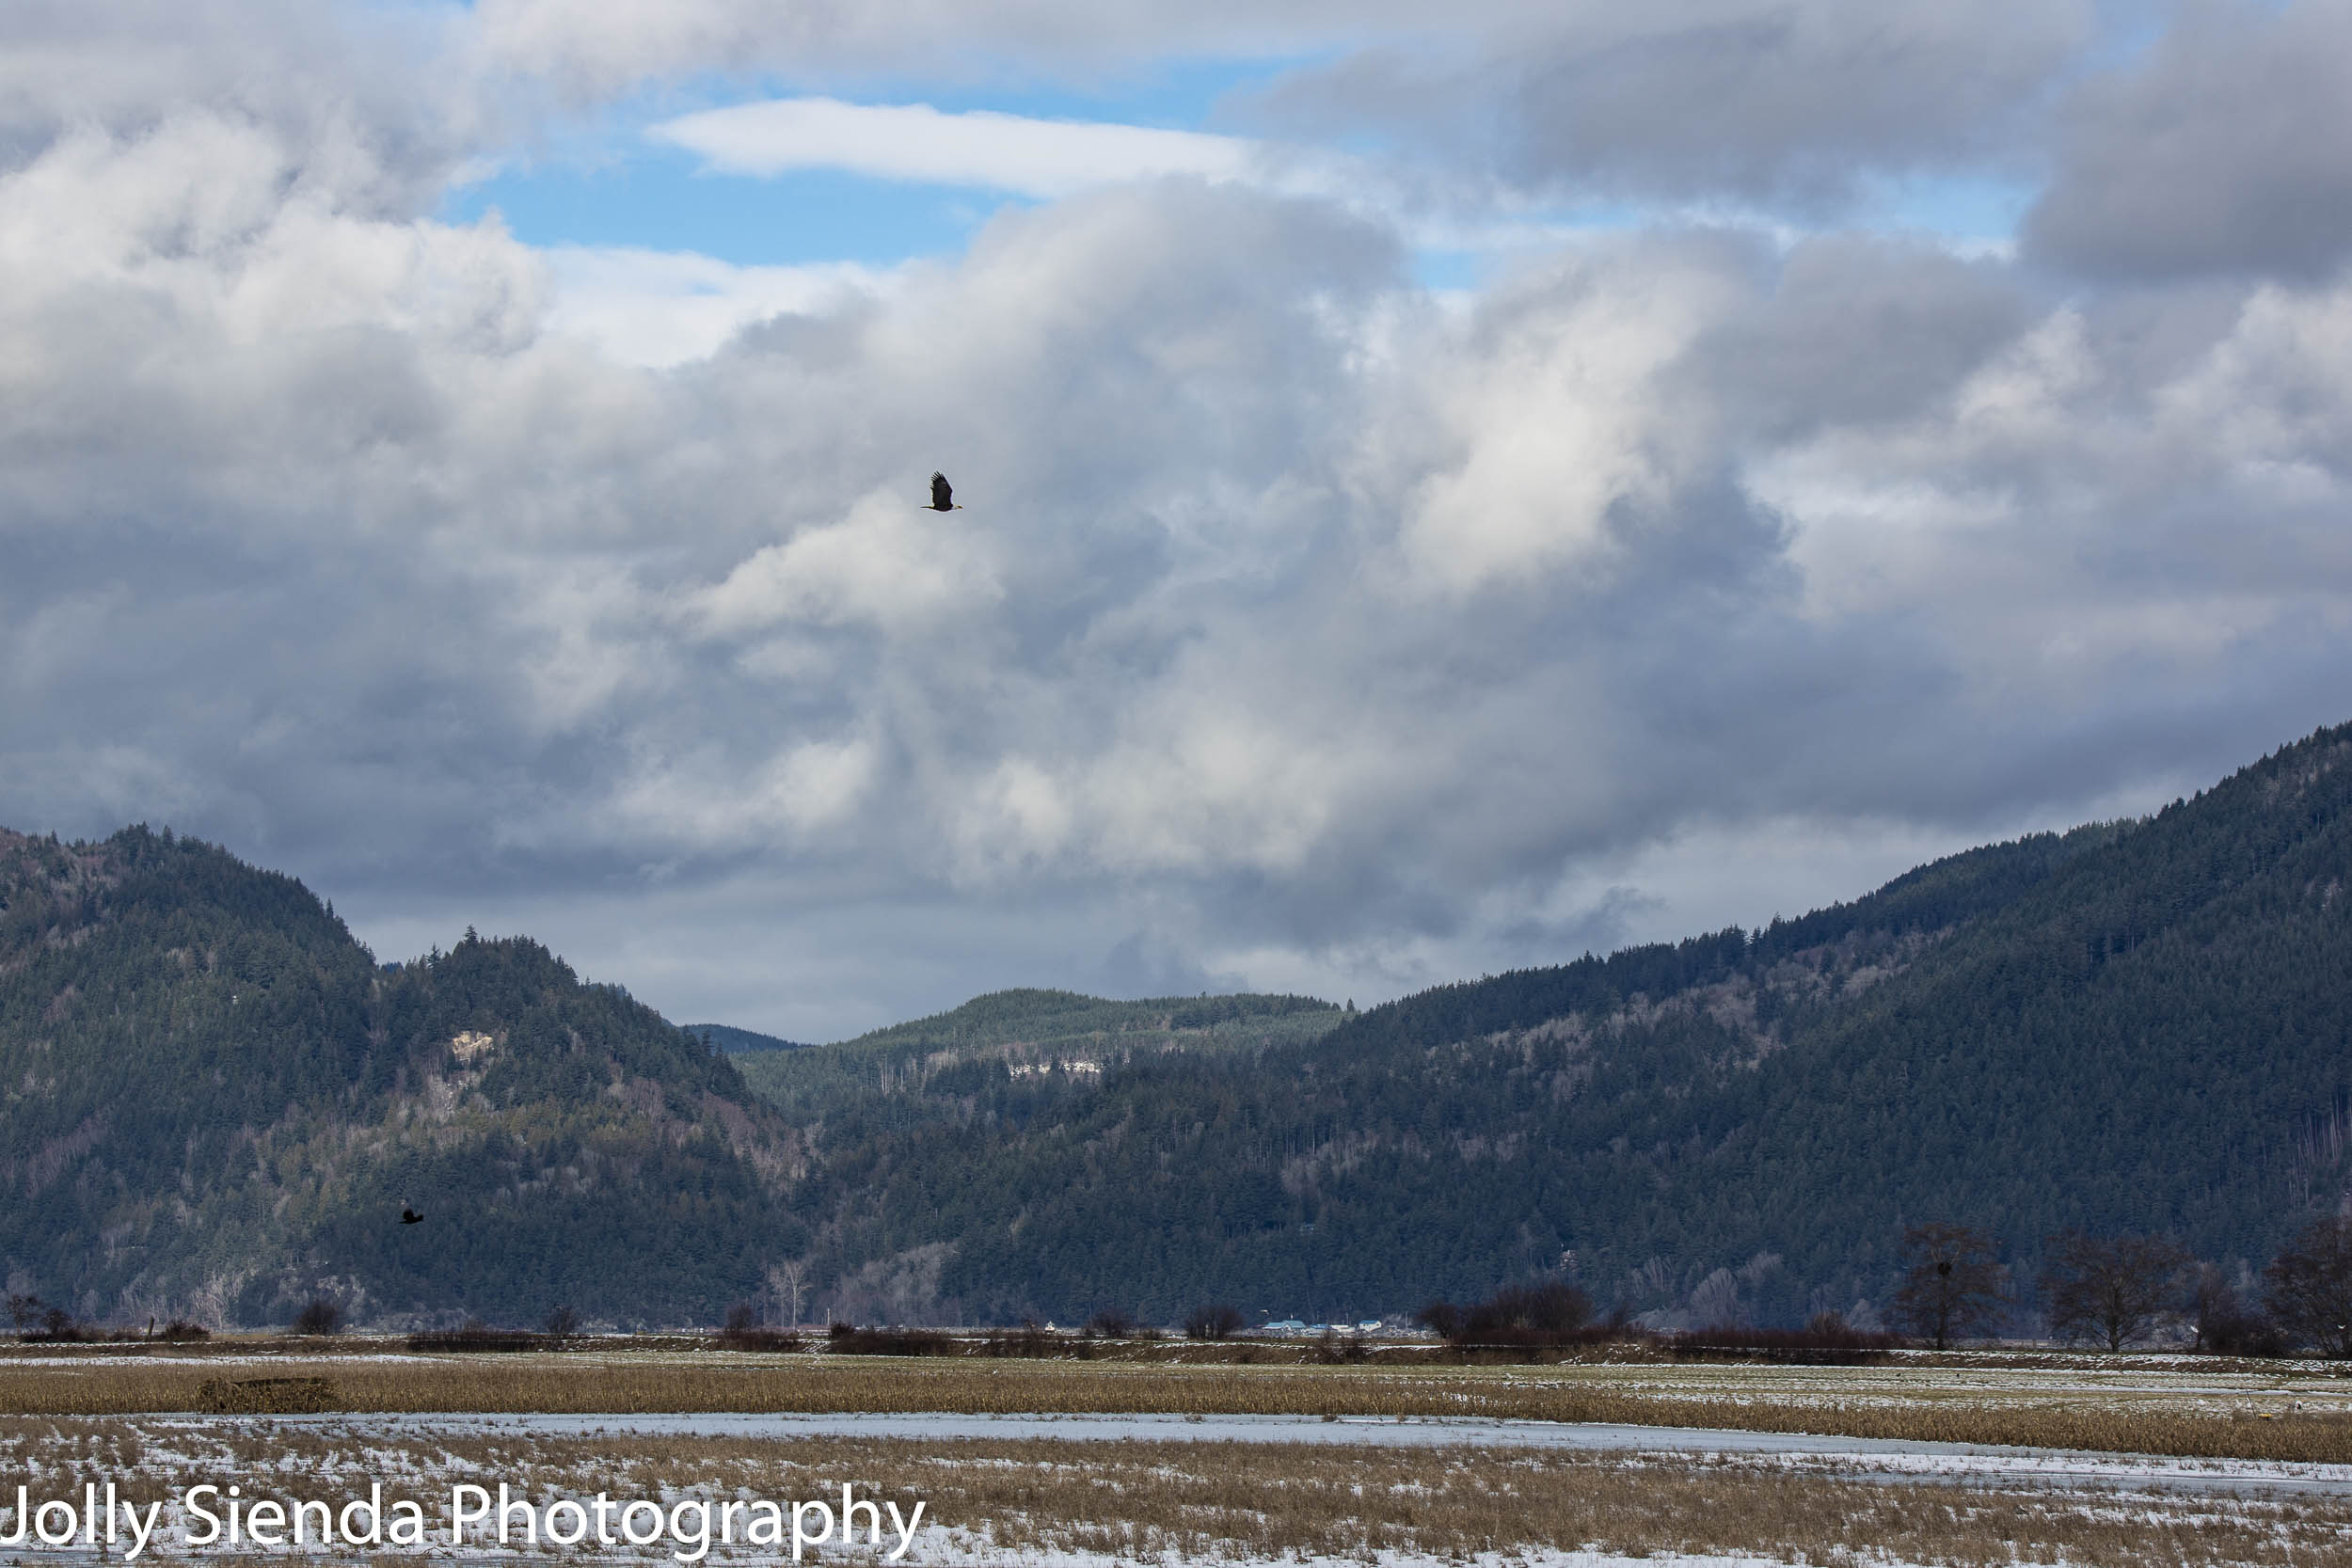 Skagit Valley, Bald Eagles flying around, and foothills